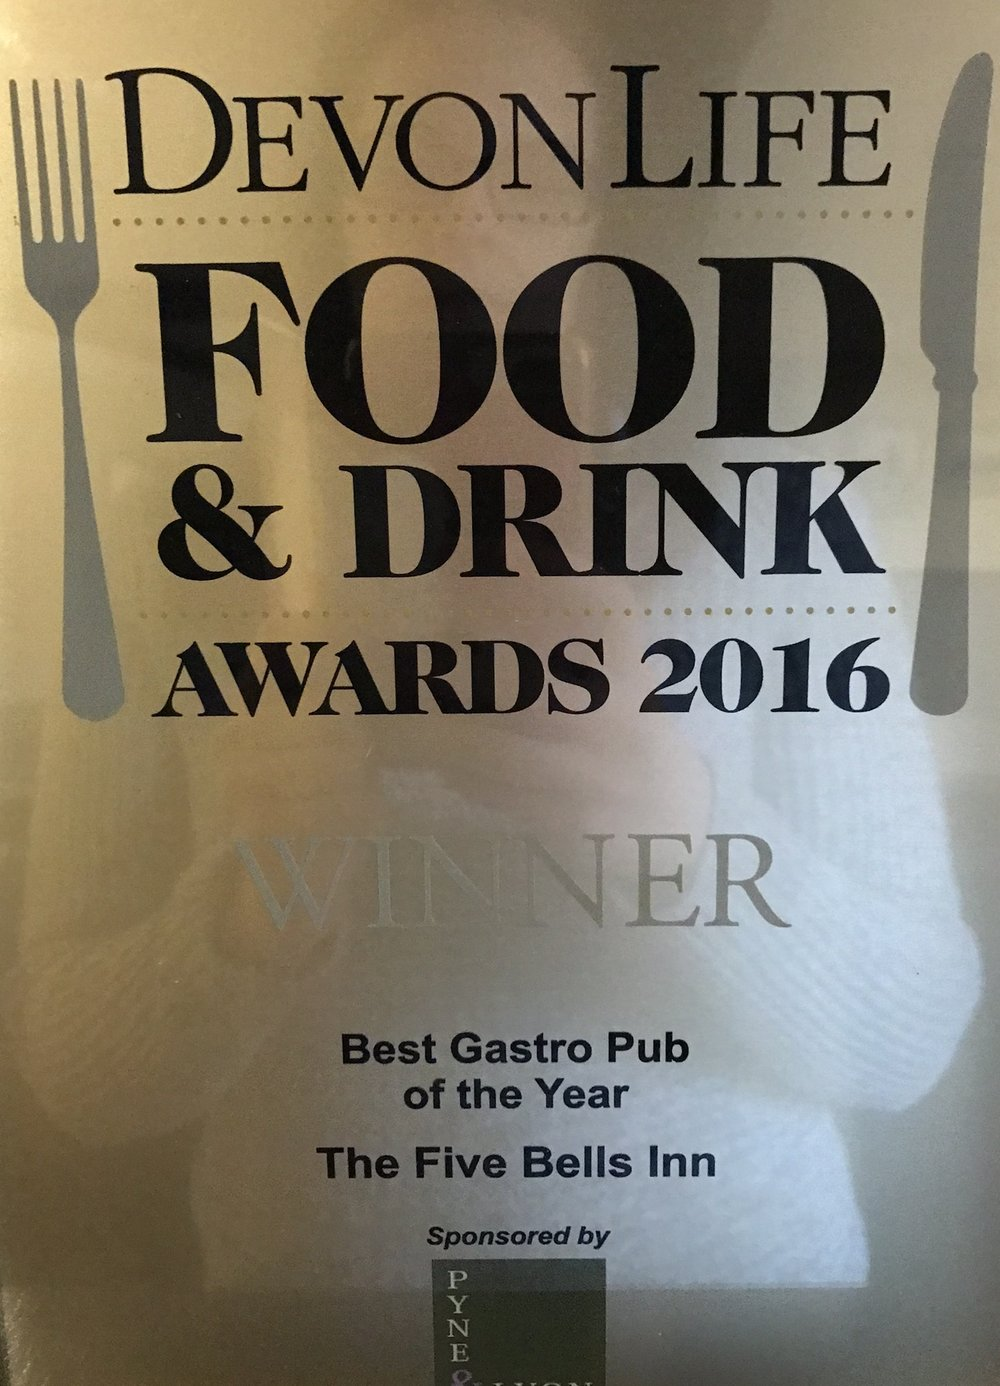 Devon Life Food & Drink Awards 2016 Best Gastro Pub of the Year